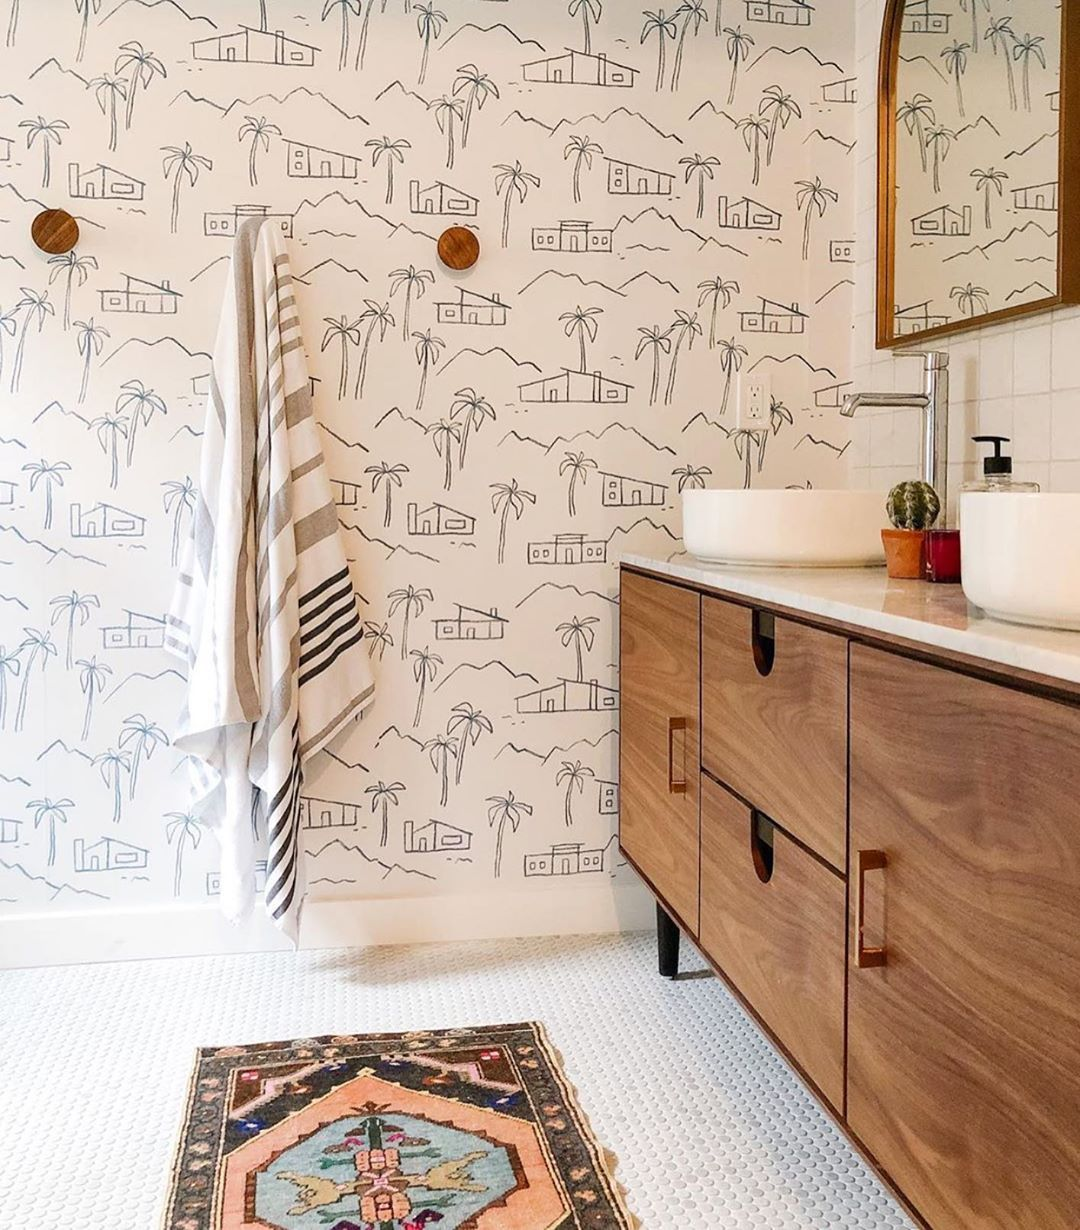 Instantly Add A Little Sunshine To You Space With Our High Quality Removable Wallpaper This Print Is Chasing Paper Chasing Paper Wallpaper Removable Wallpaper